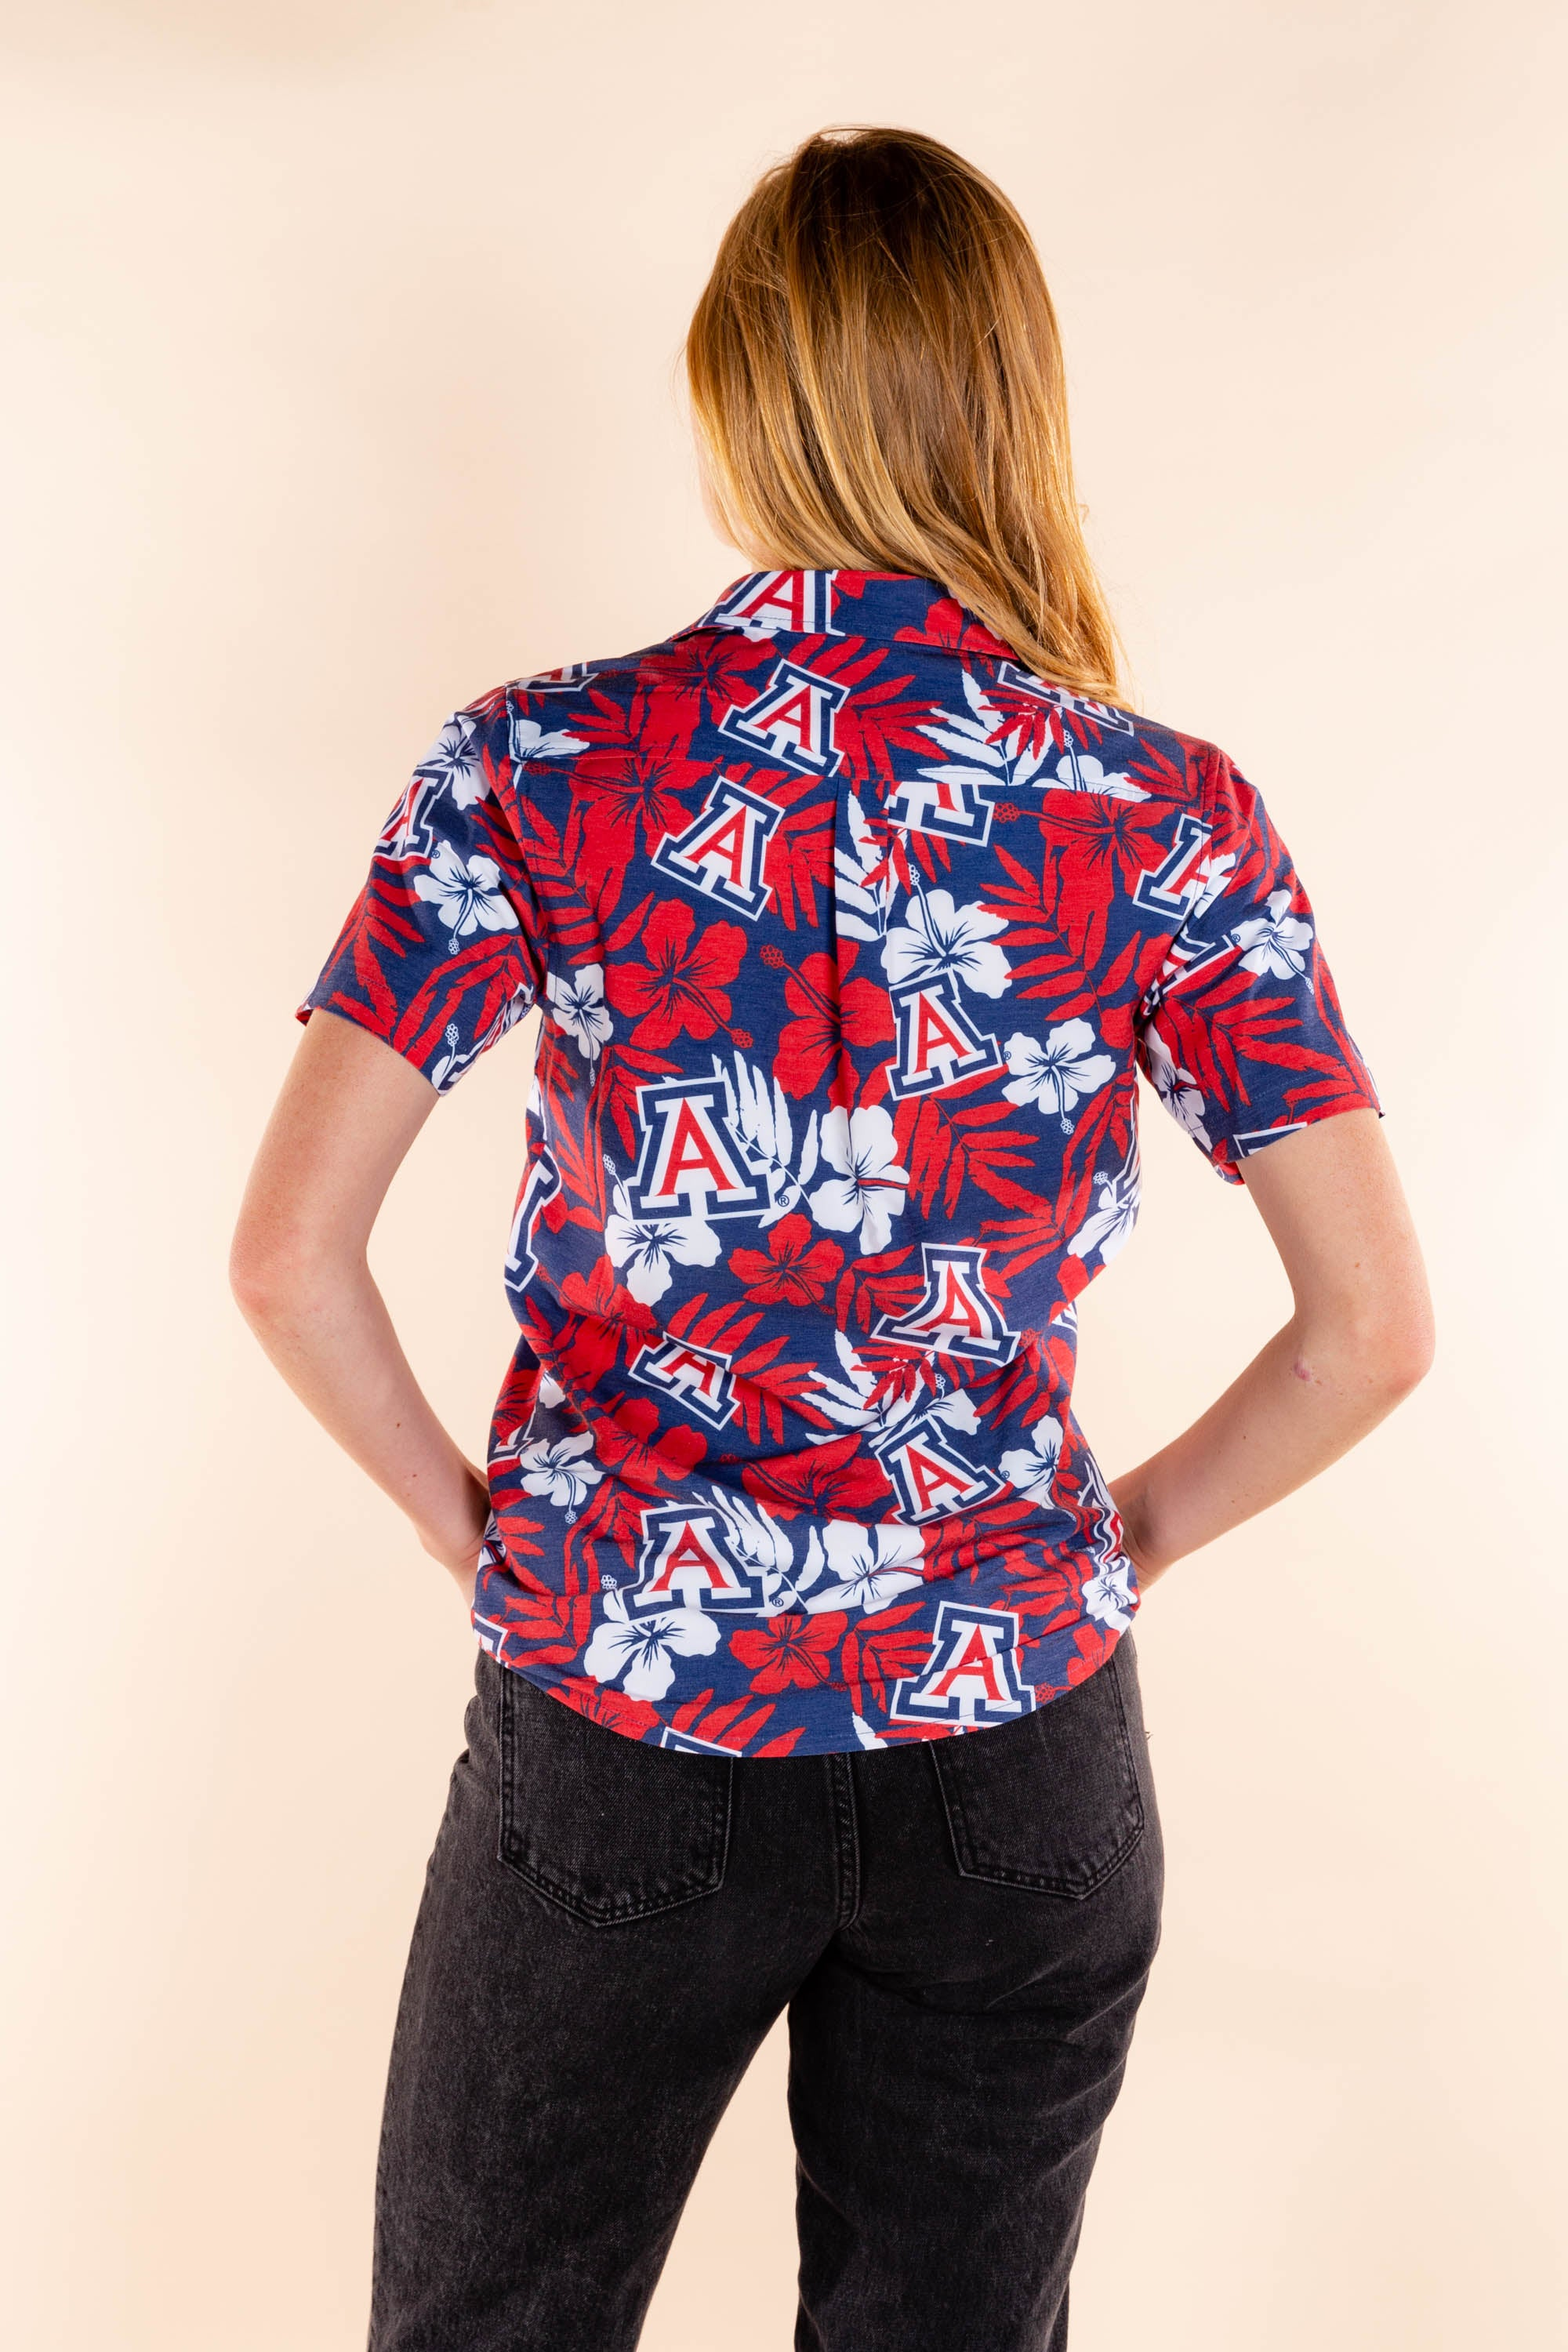 University of Arizona Tailgating Gameday shirt